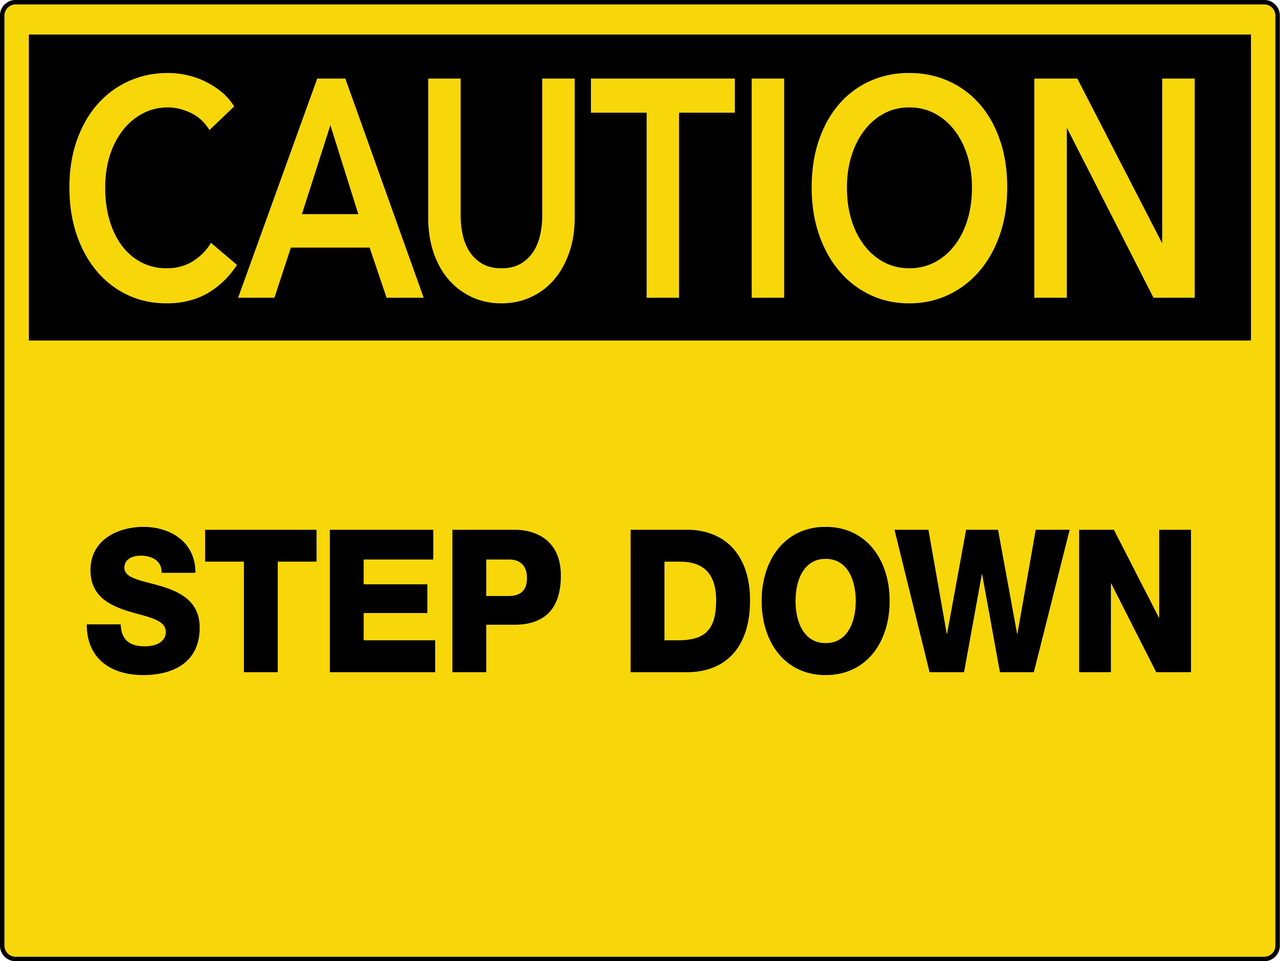 Caution Step Down Wall Sign Creative Safety Supply